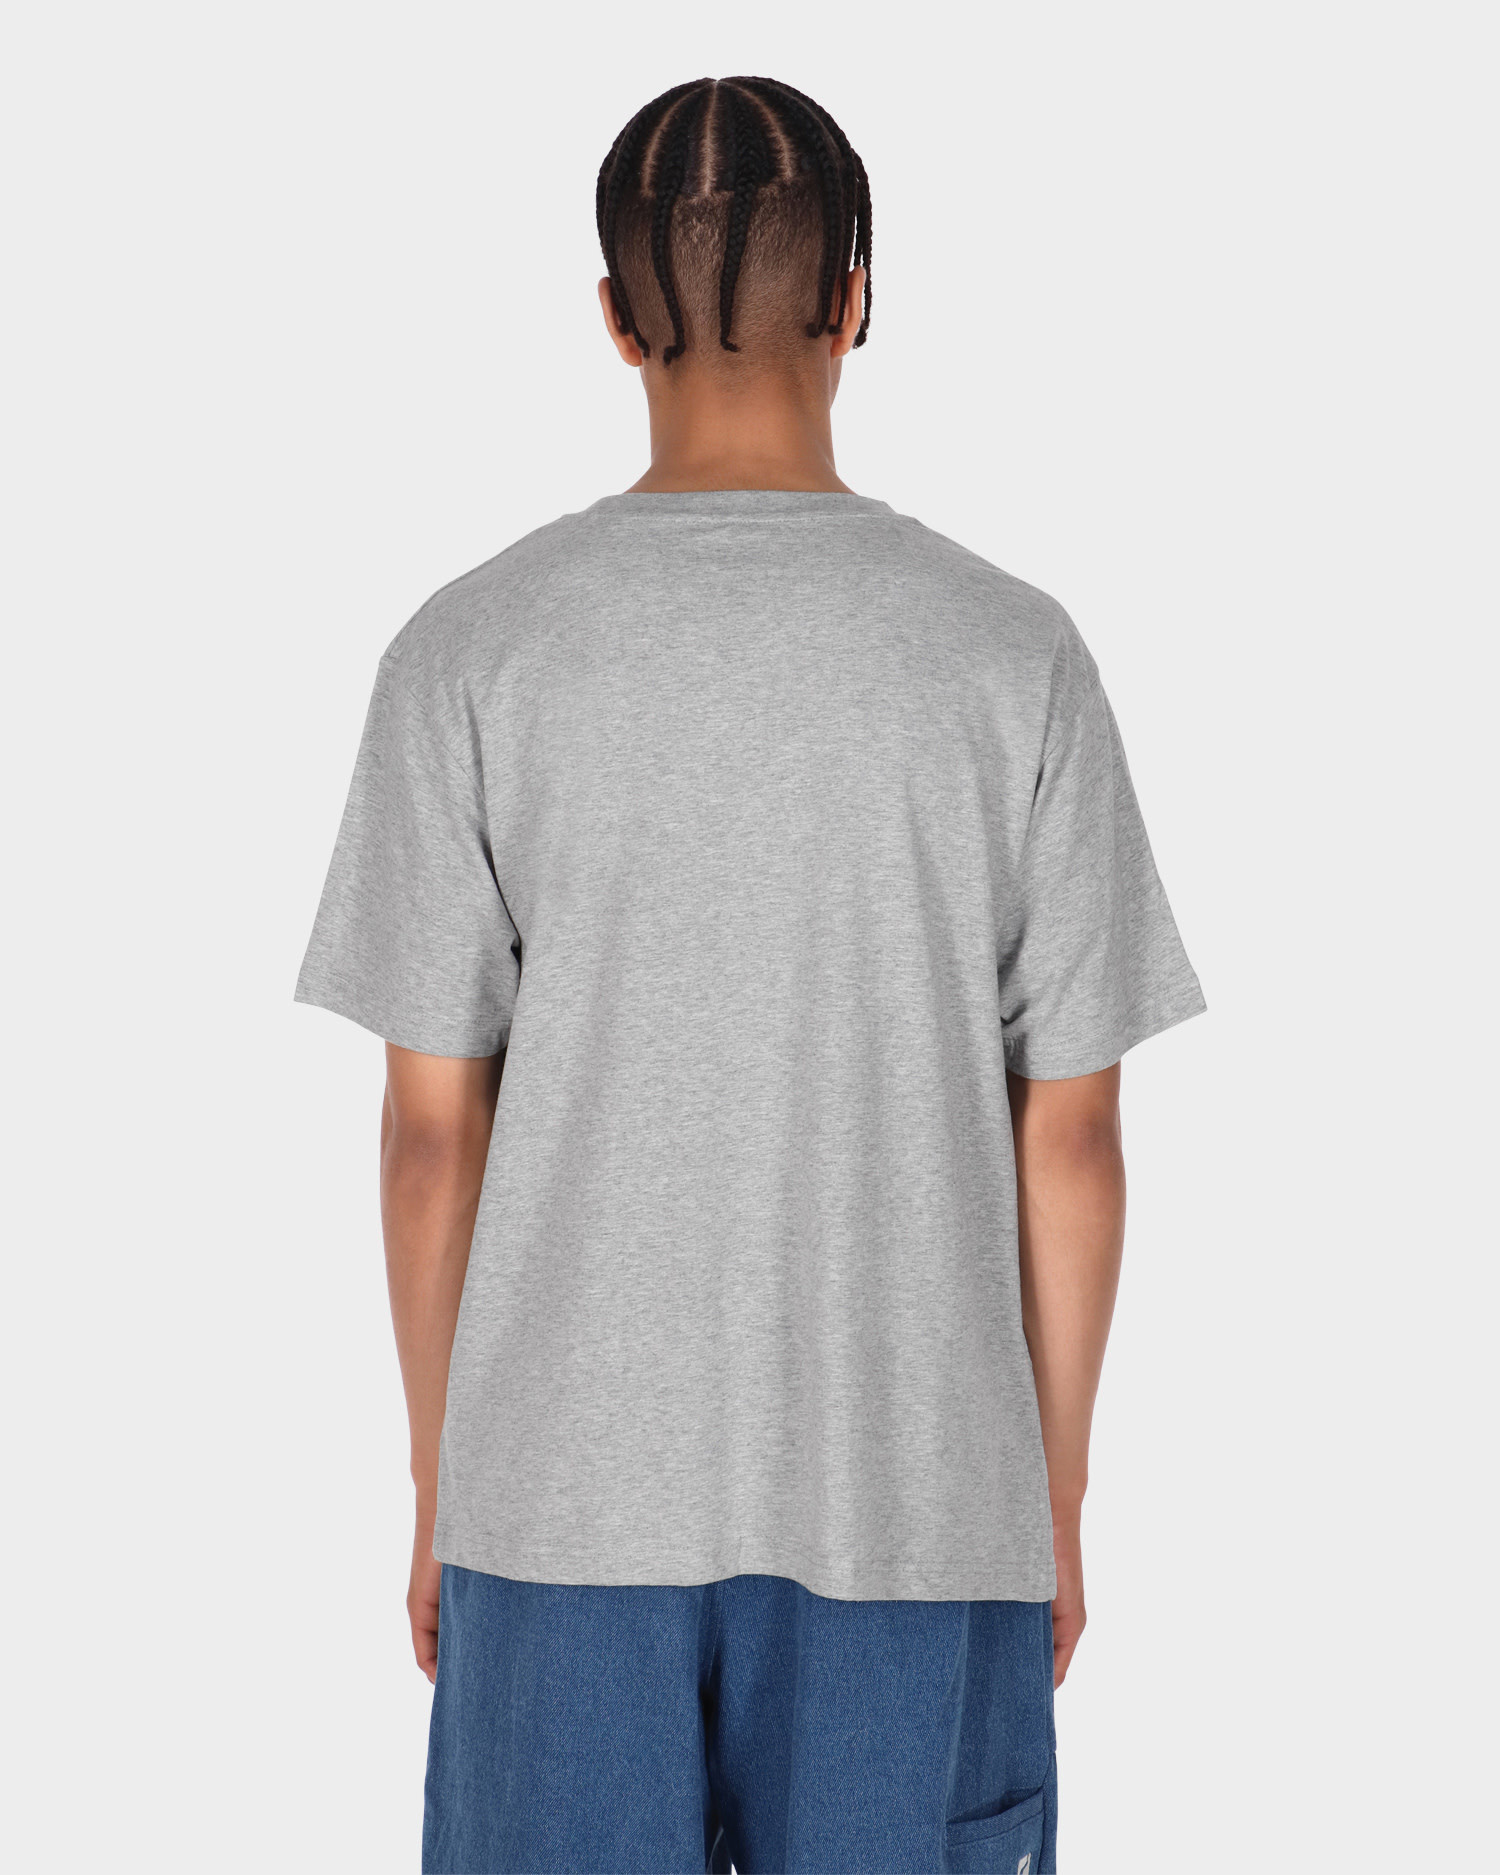 Poetic Collective Sport T-shirt Grey